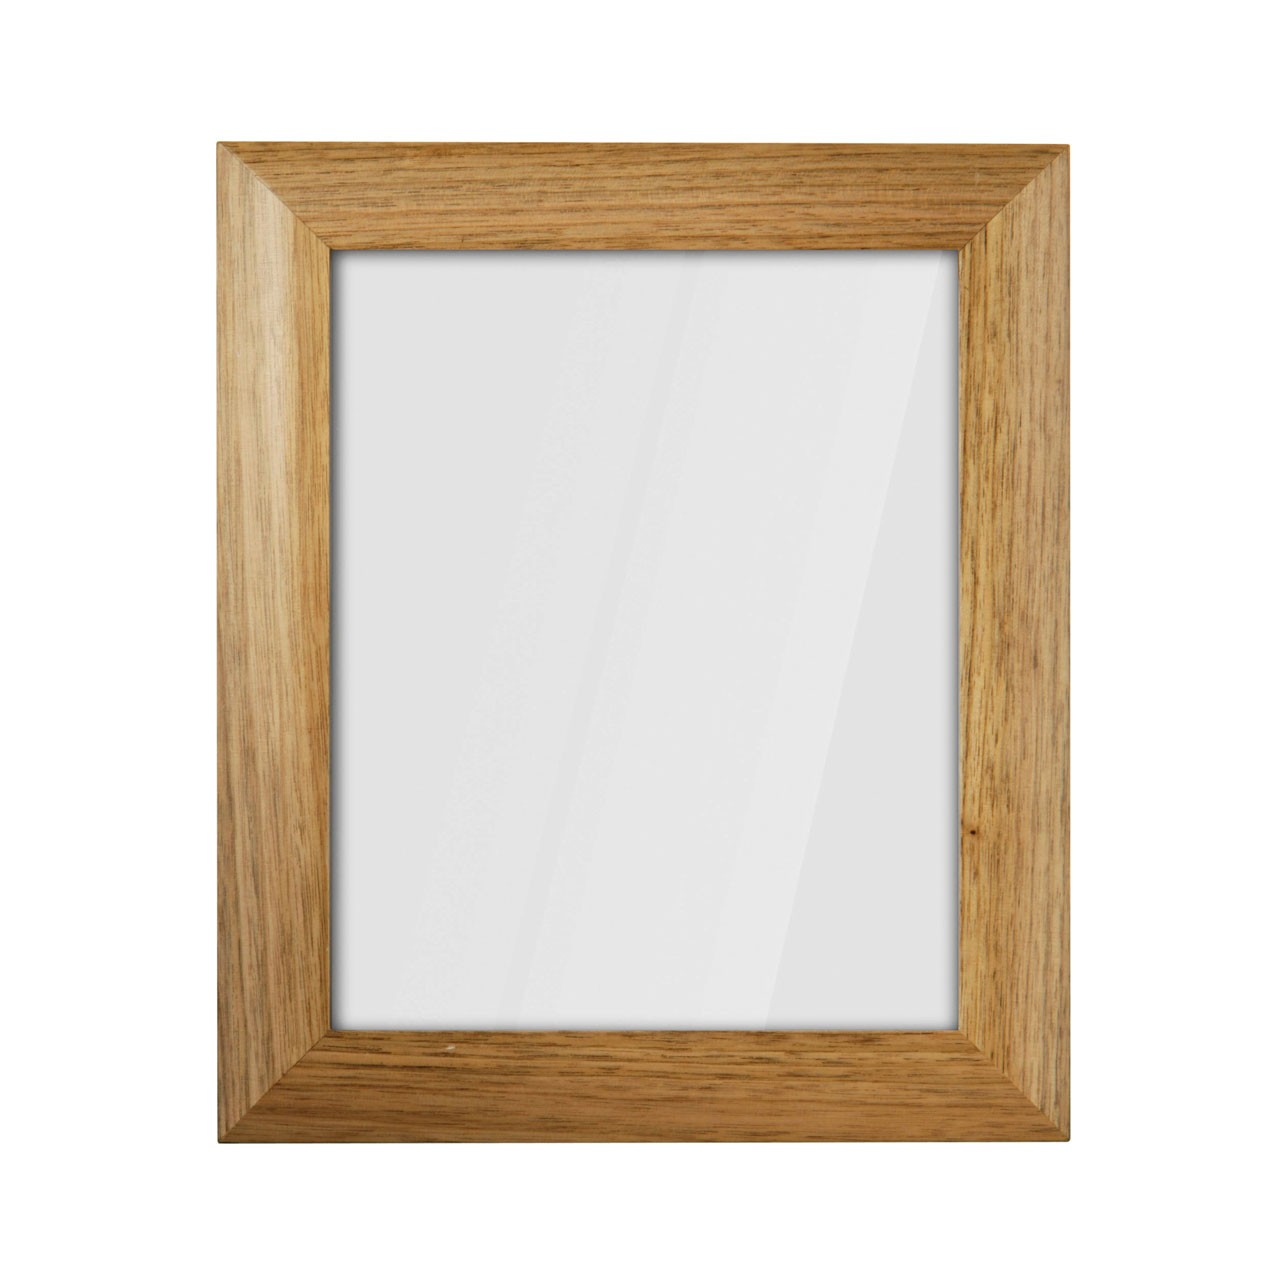 Premier Housewares Walnut Wood Photo Frame - 8 x 10 inch